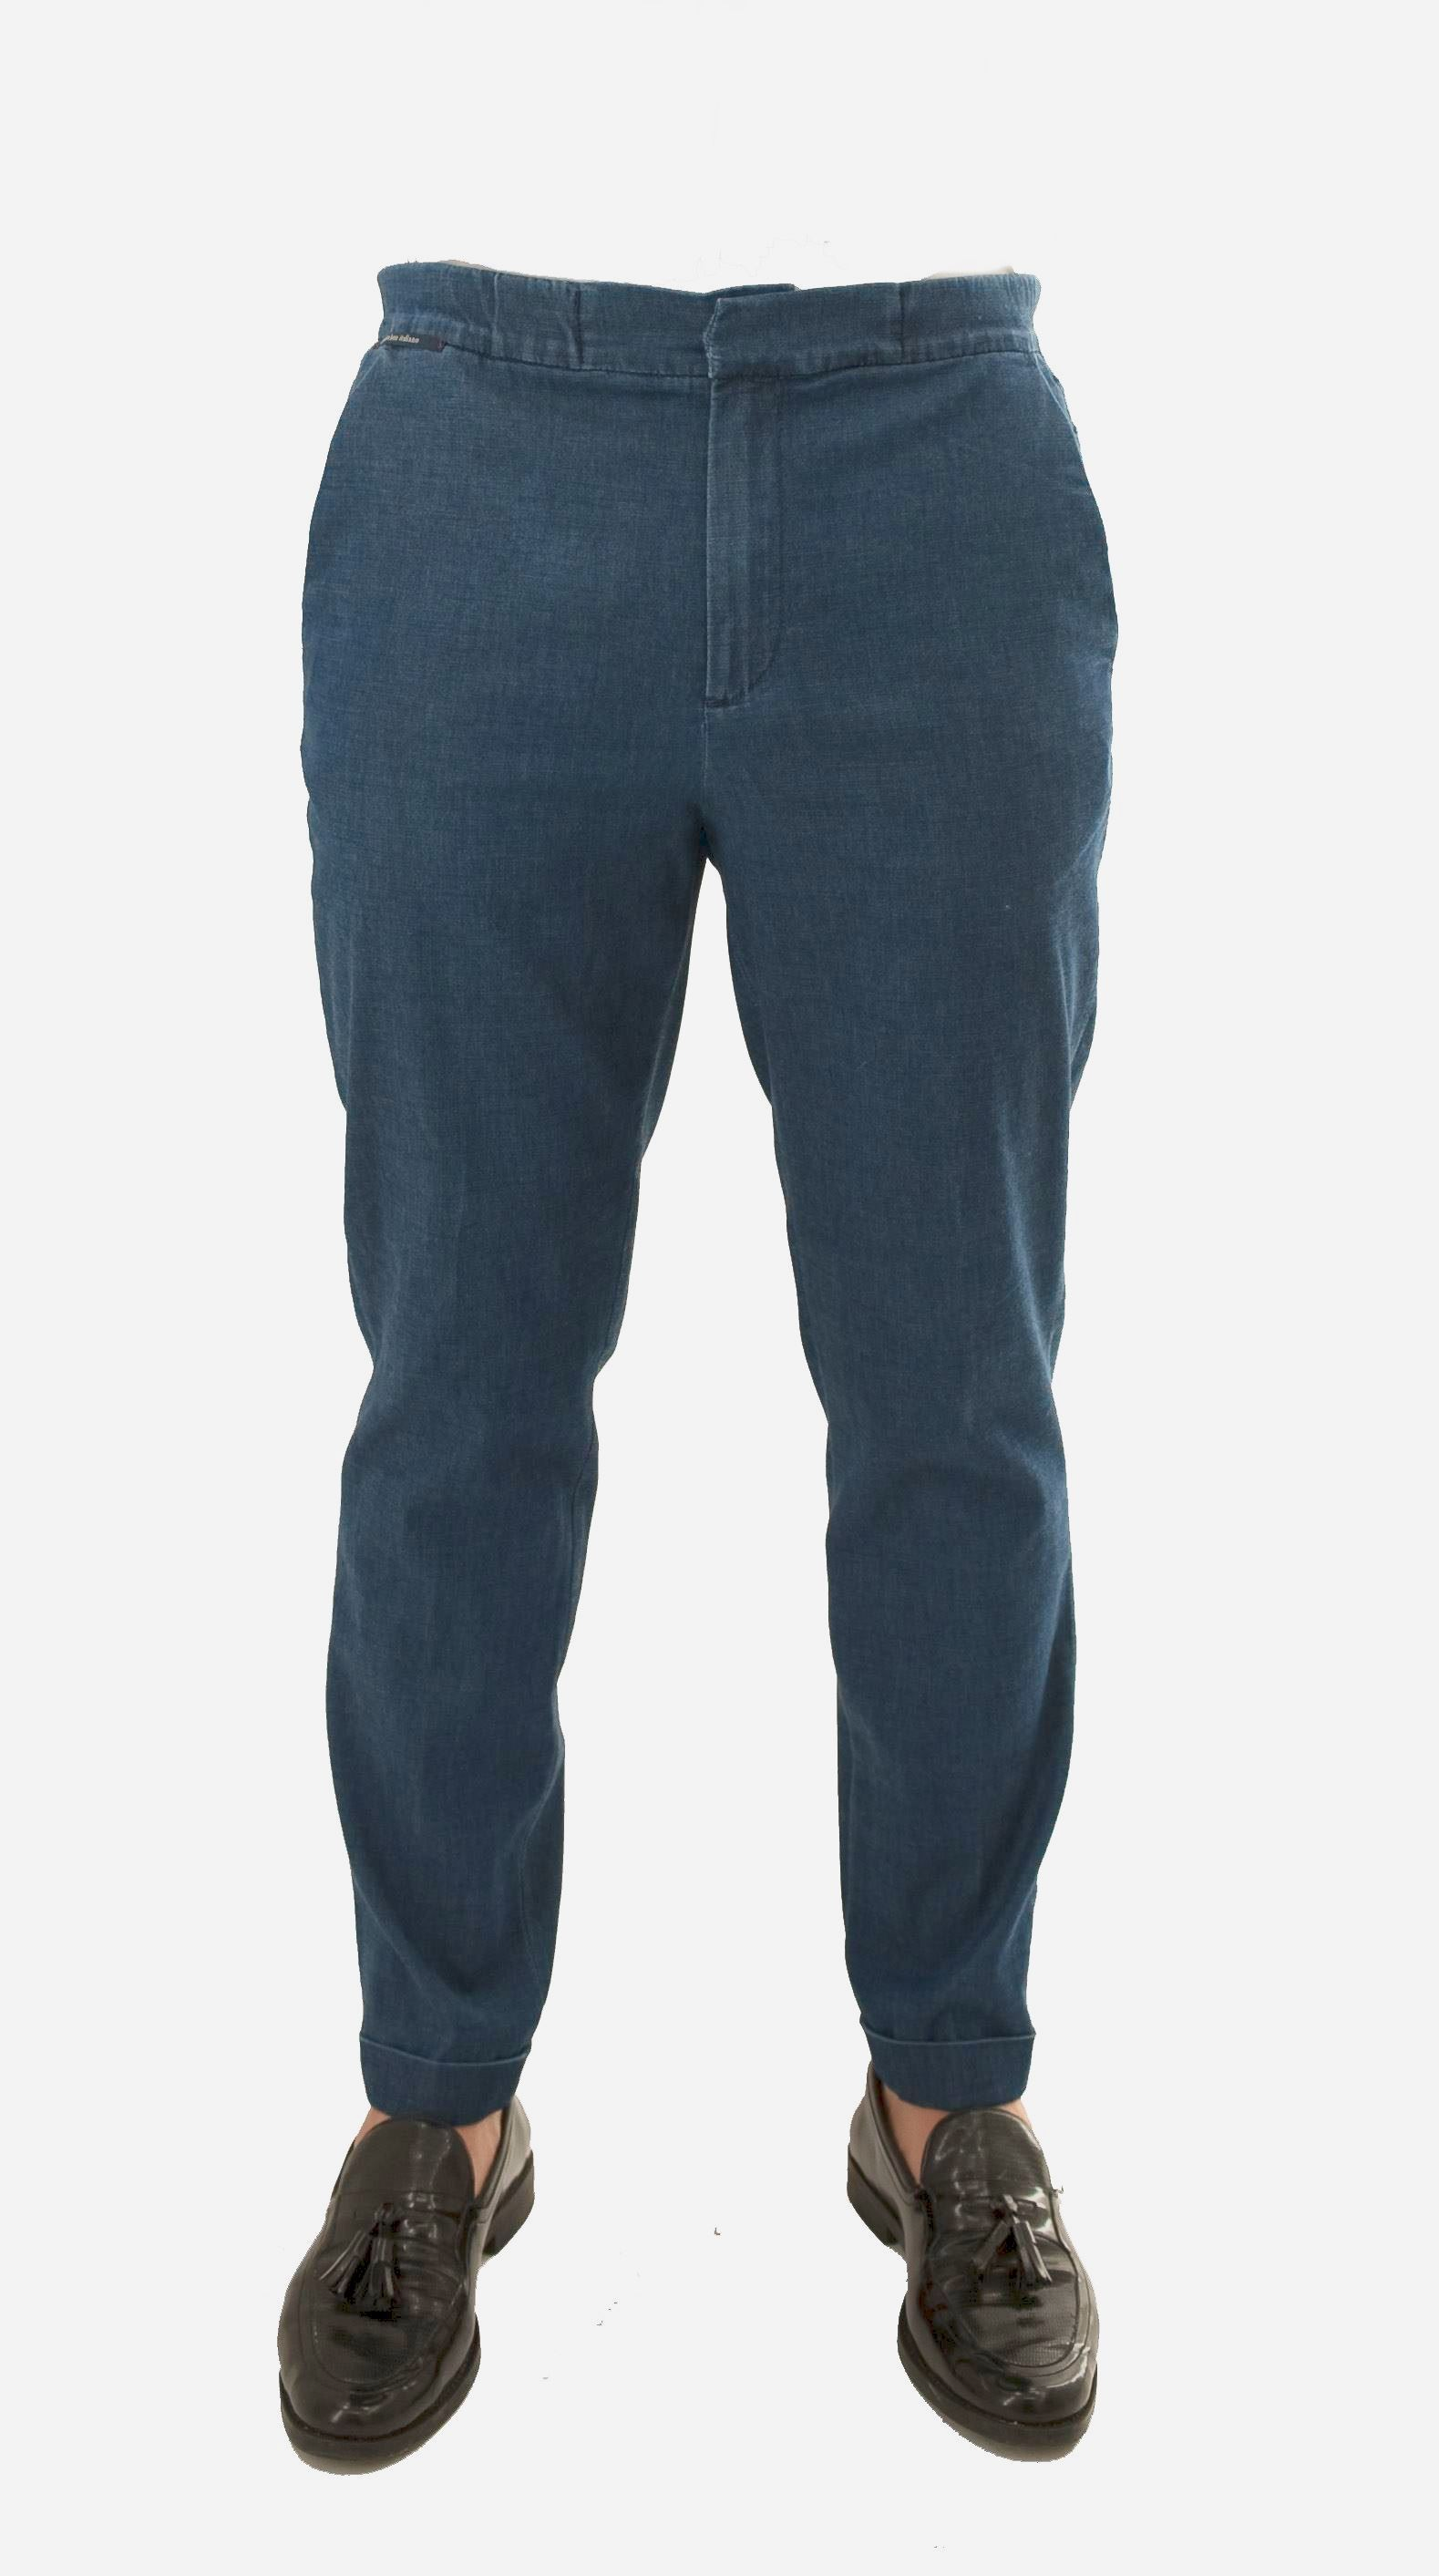 Immagine di Pantalone denim con coulisse